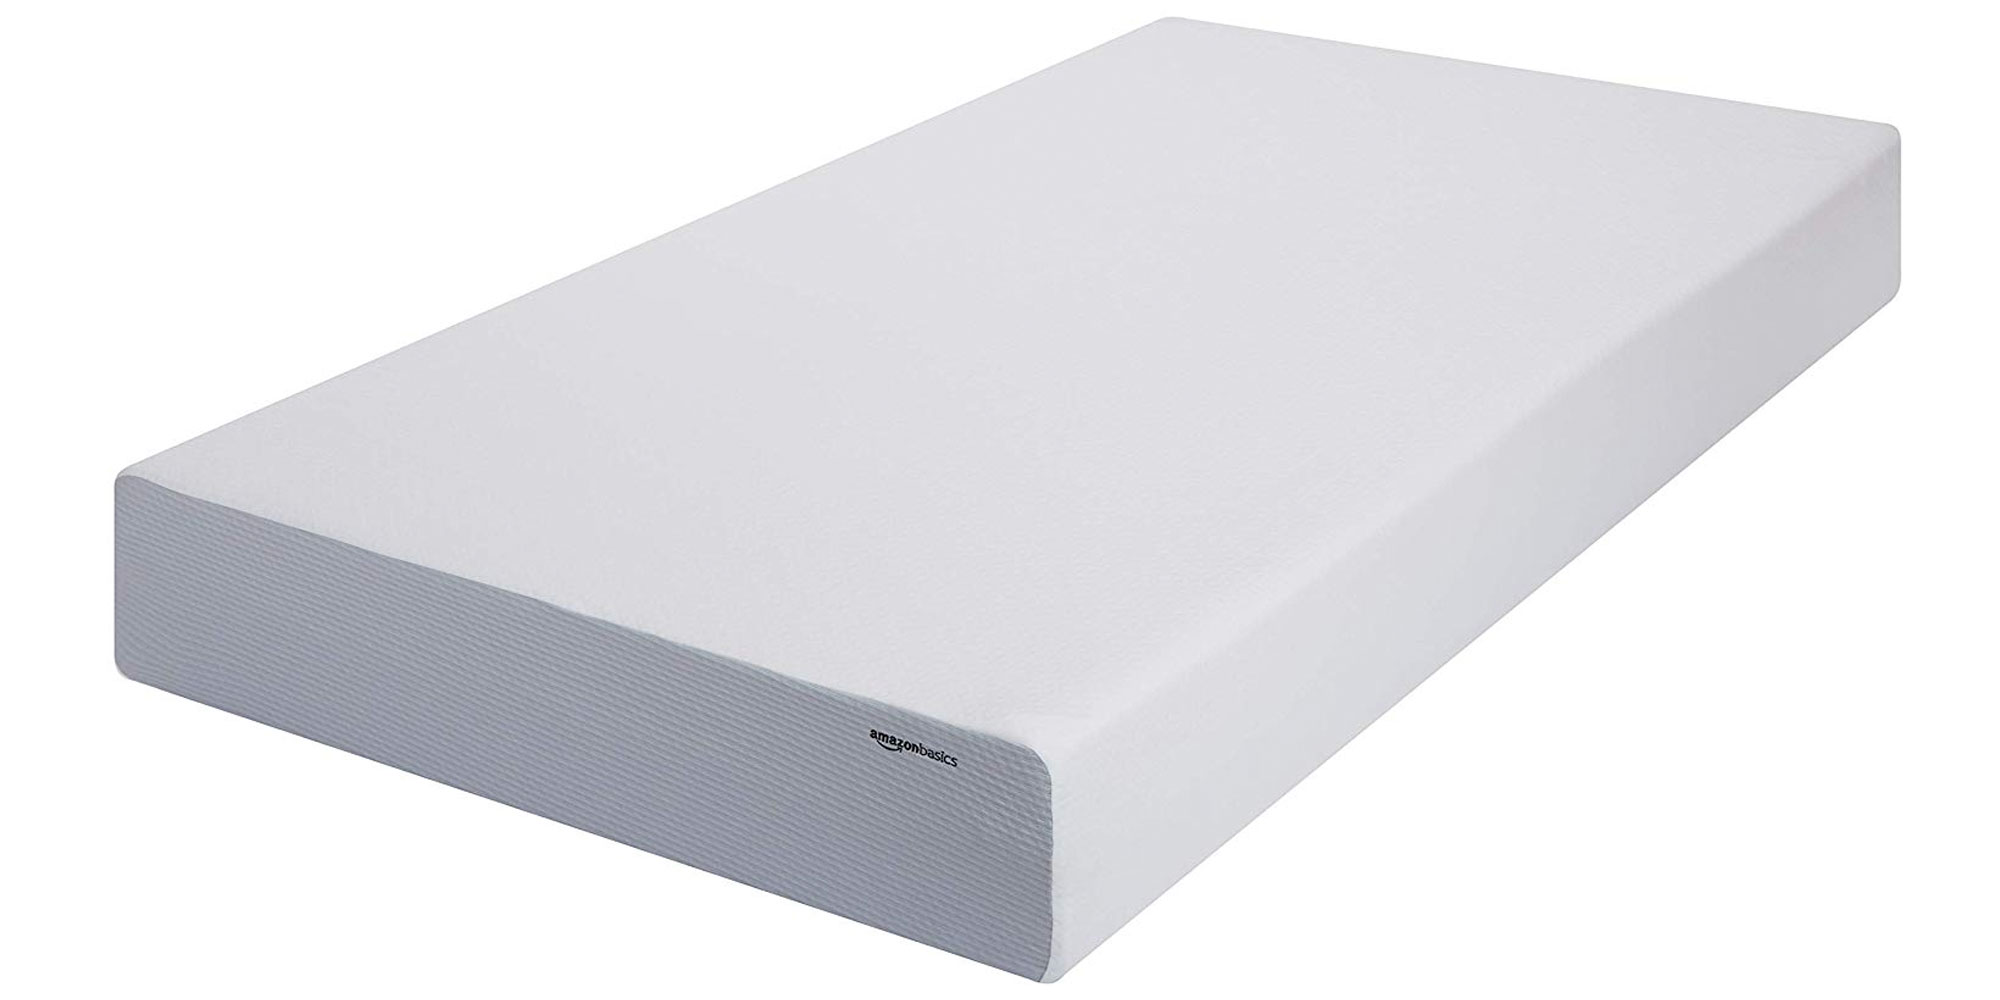 Amazon Launches Its Own Amazonbasics Memory Foam Mattresses With Prices From 130 9to5toys